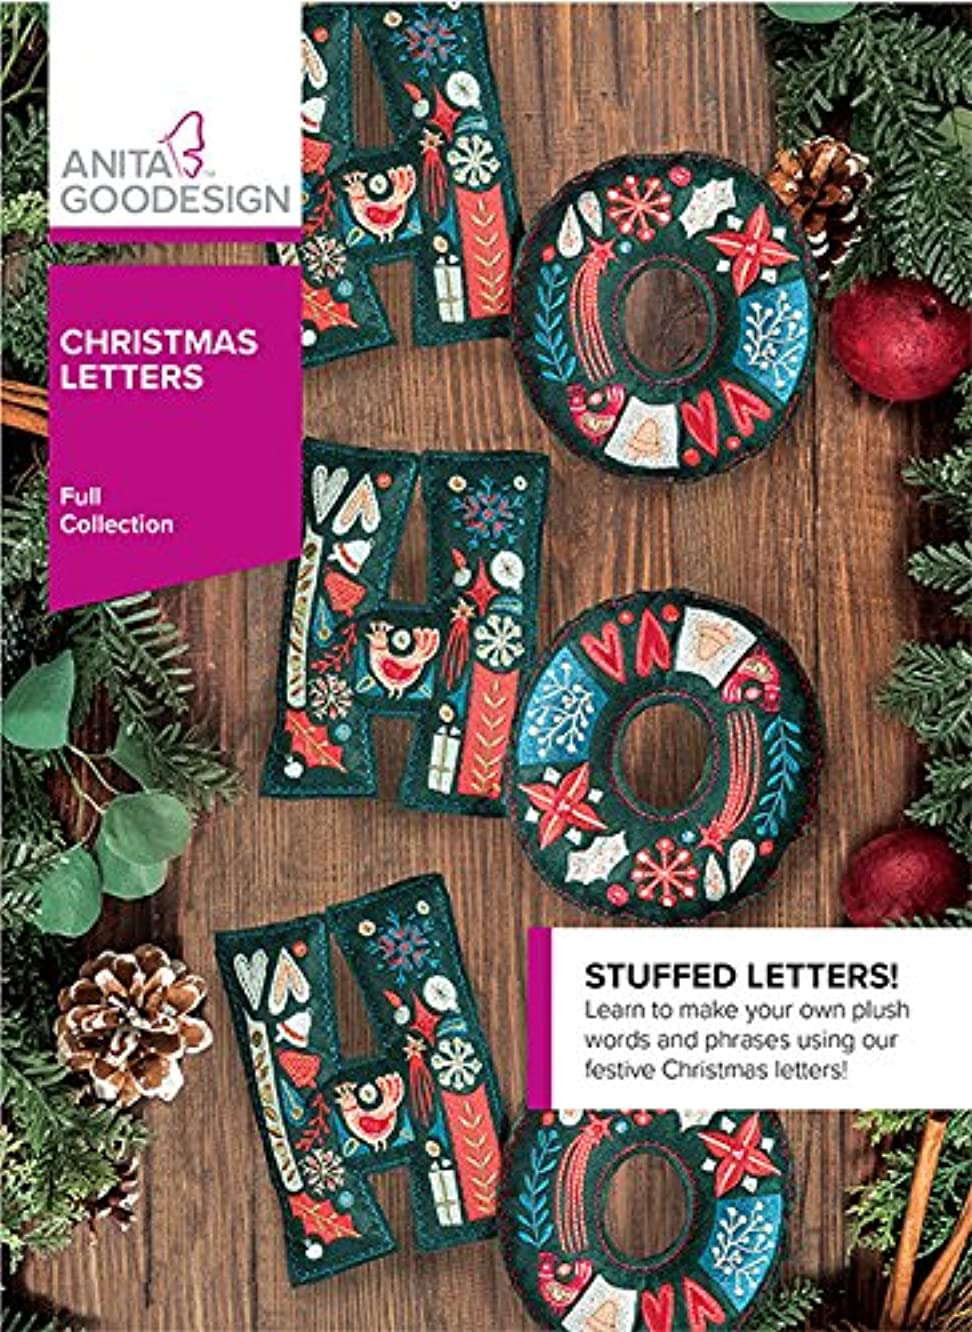 Anita Goodesign Embroidery Machine Designs CD Christmas Letters